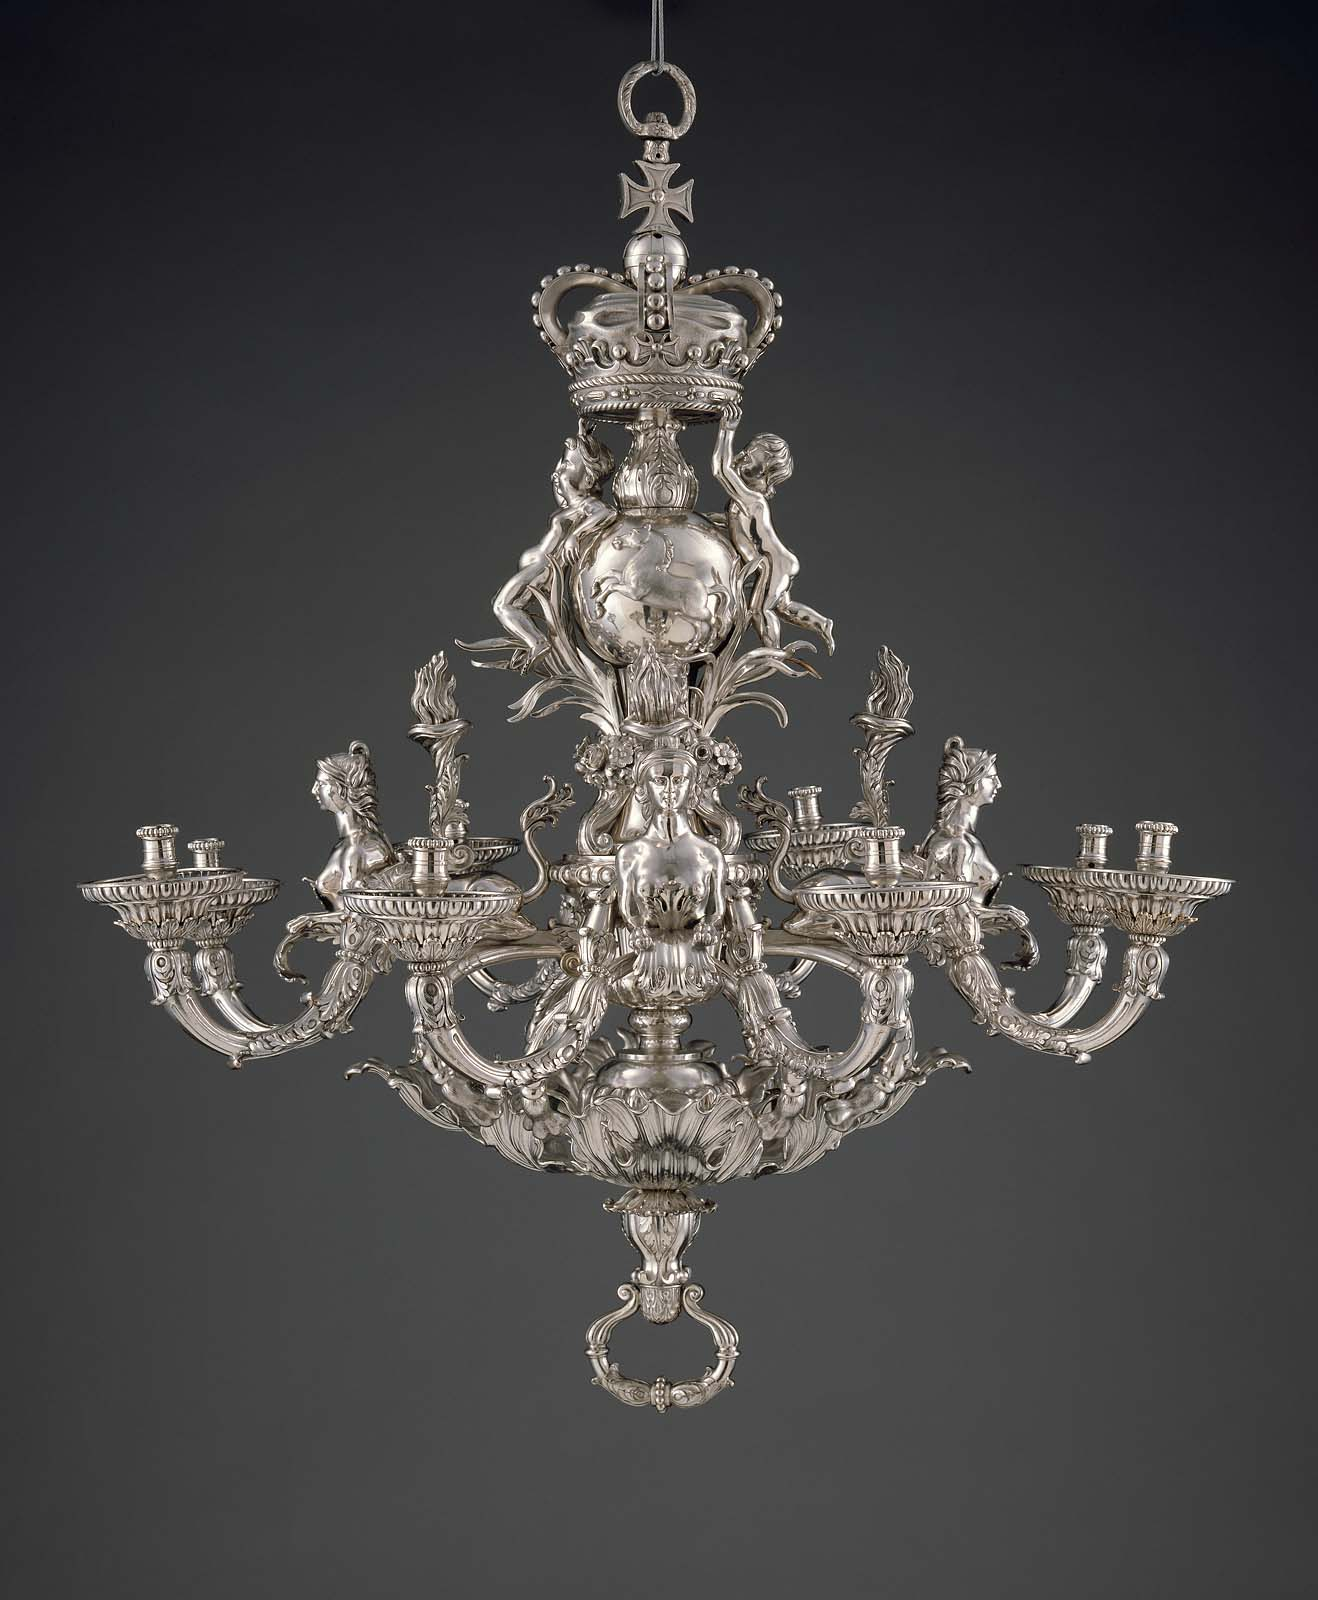 Chandelier museum of fine arts boston you are here arubaitofo Image collections